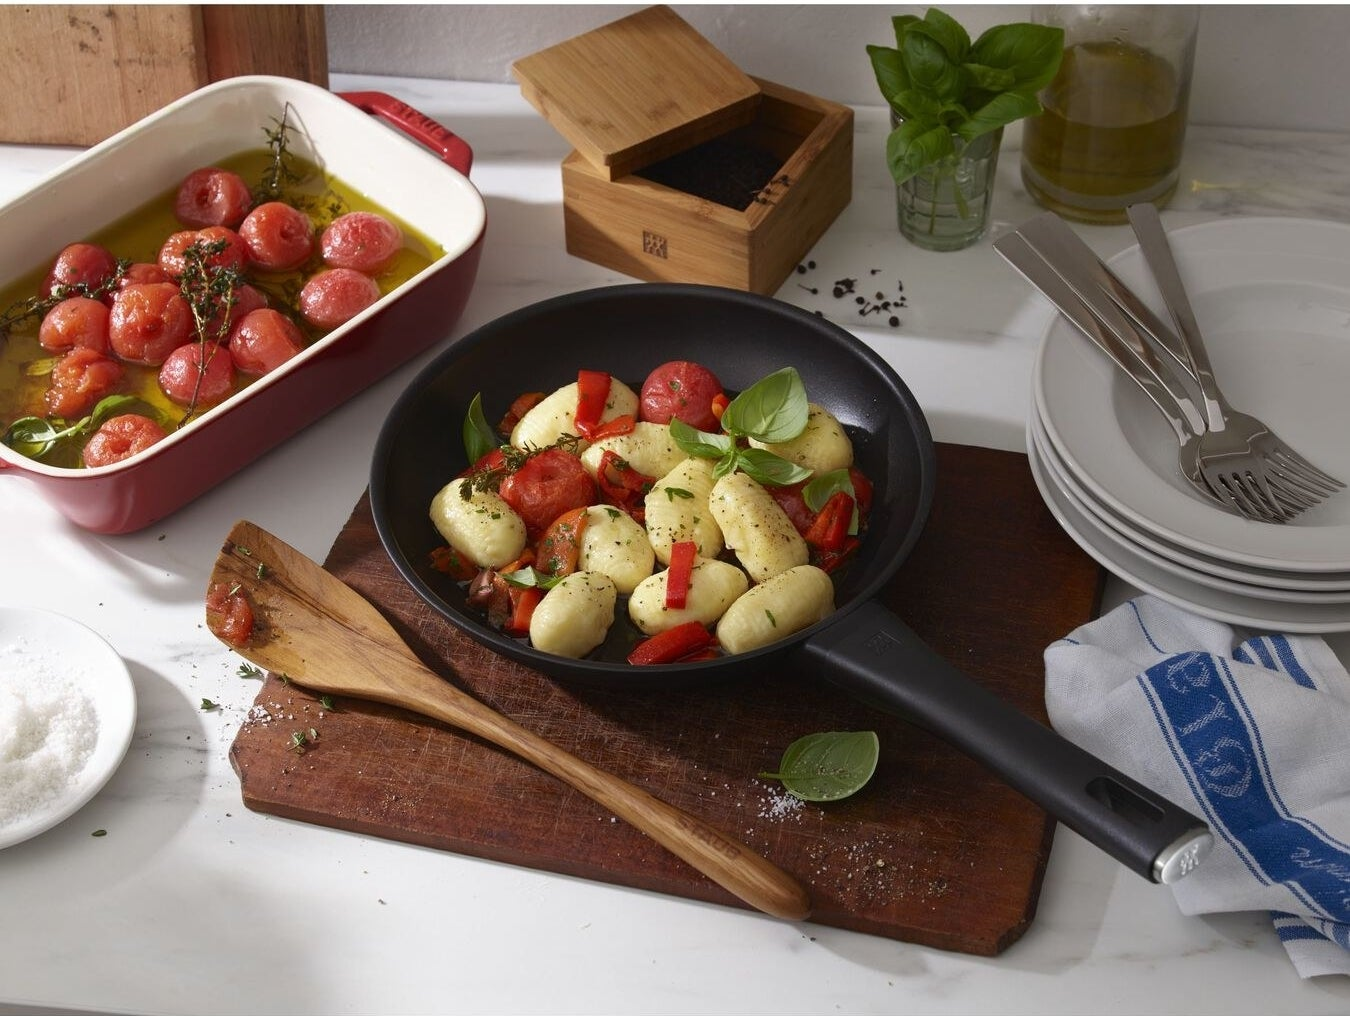 Zwilling frying pan with potatoes and veggies inside